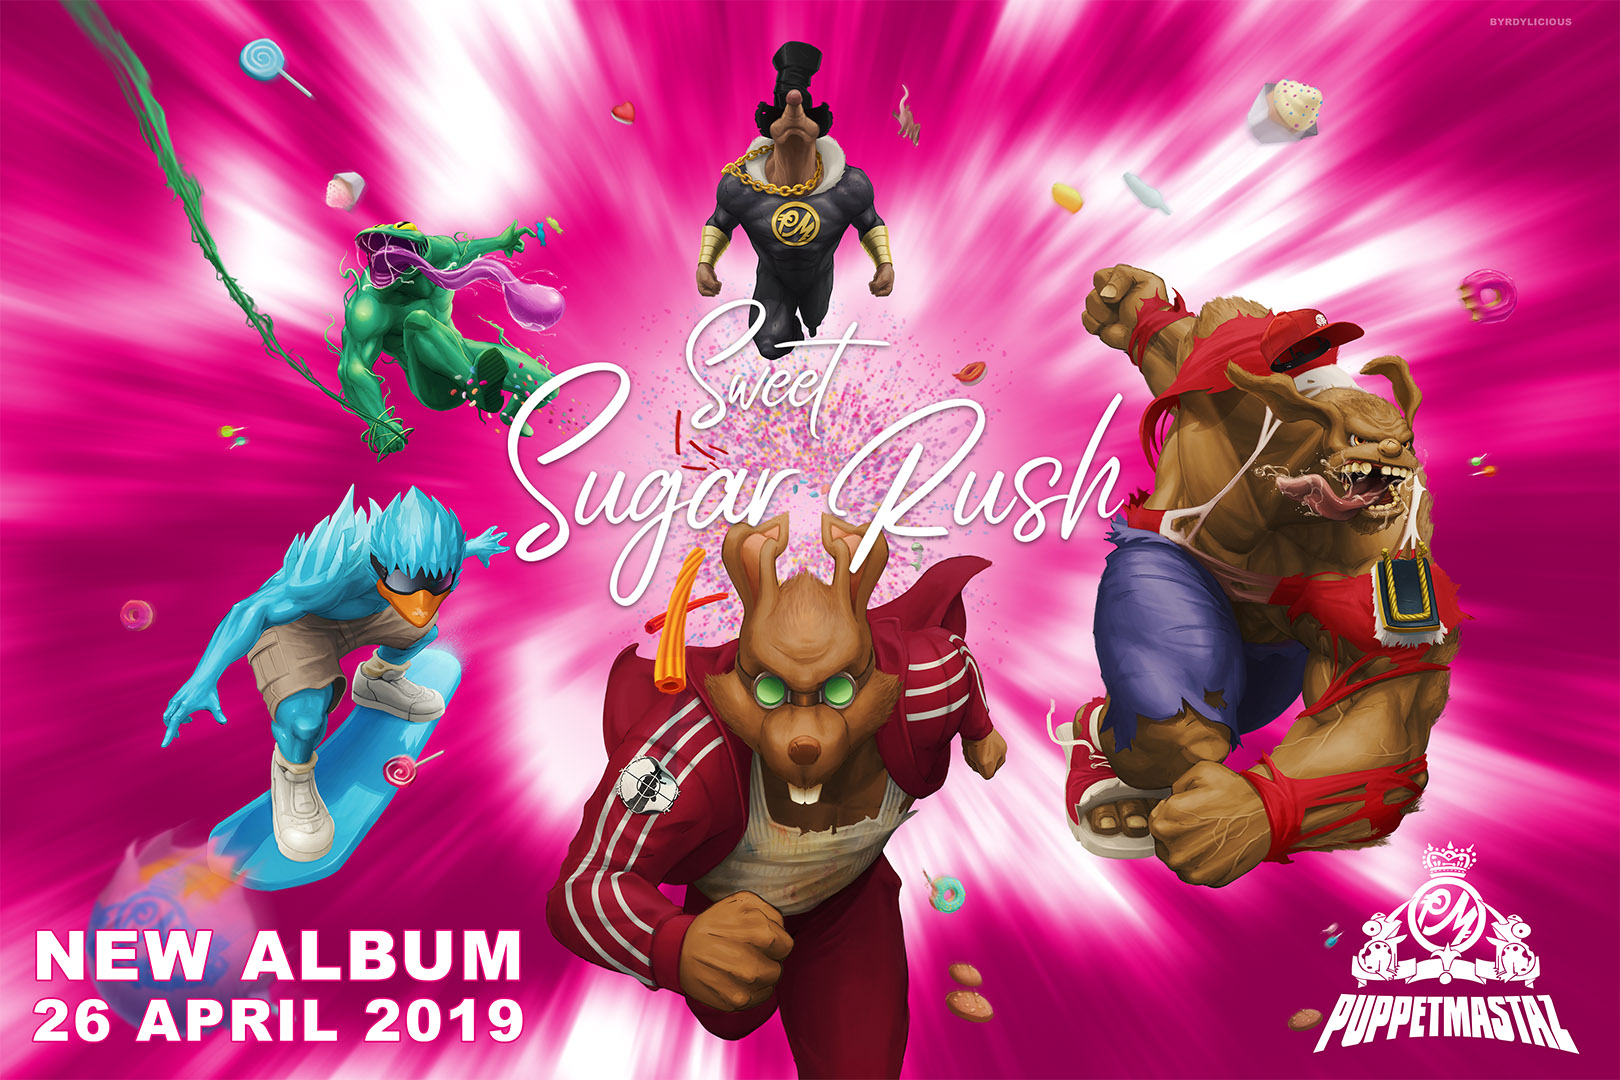 Sweet Sugar Rush Music Album Marketing Art